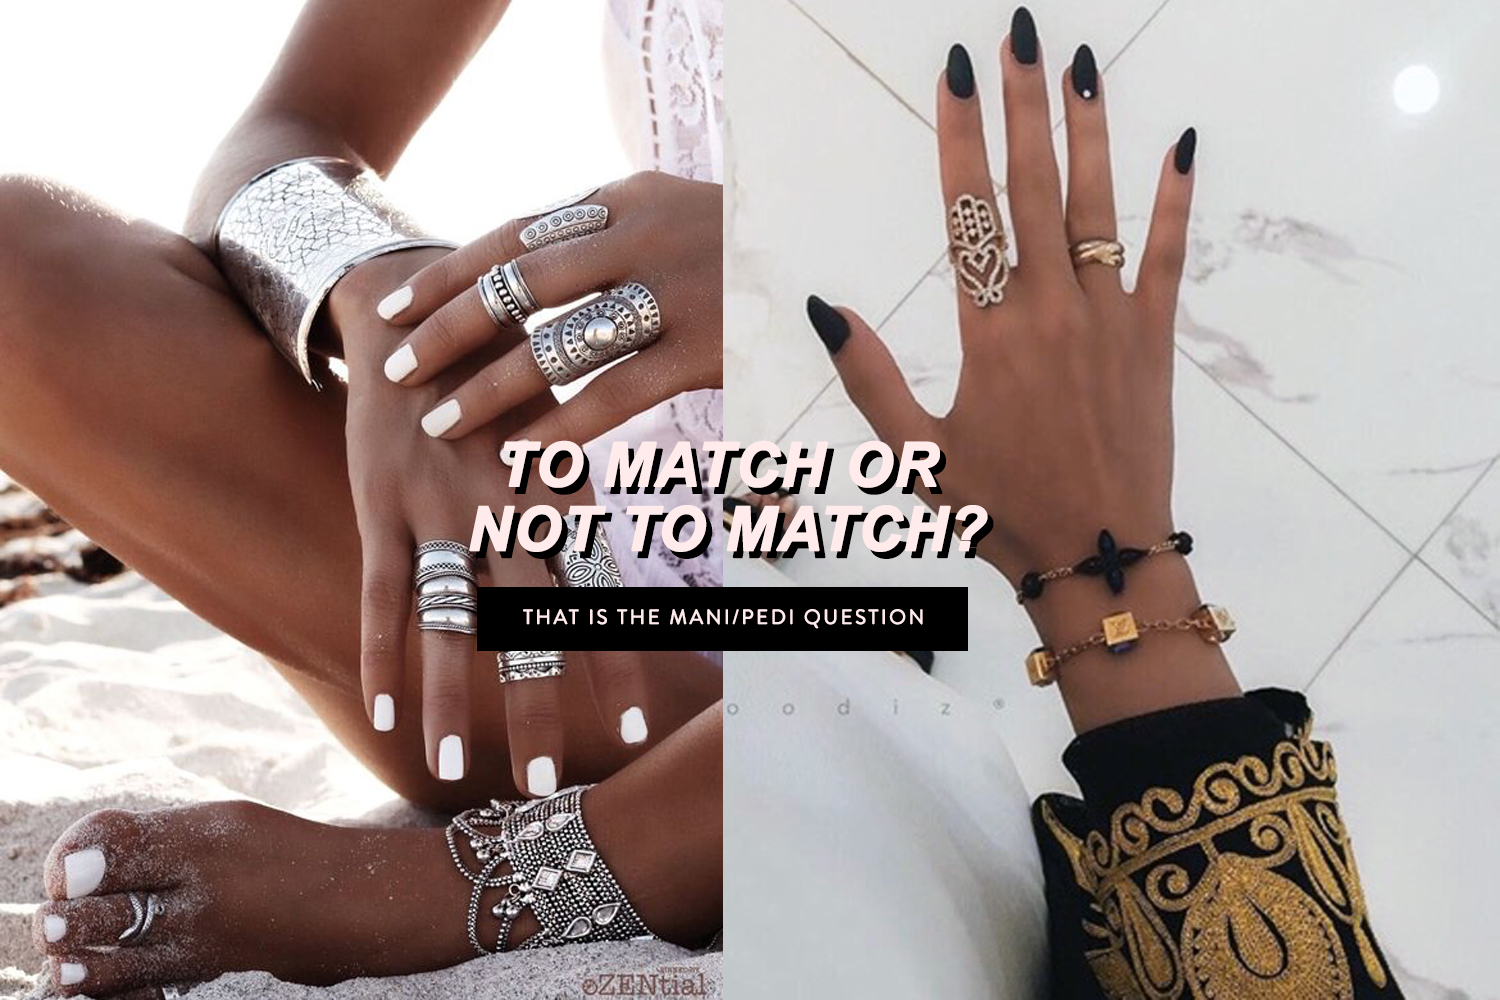 Beauty Do or Don\'t: Matching Your Nails to Your Toes?